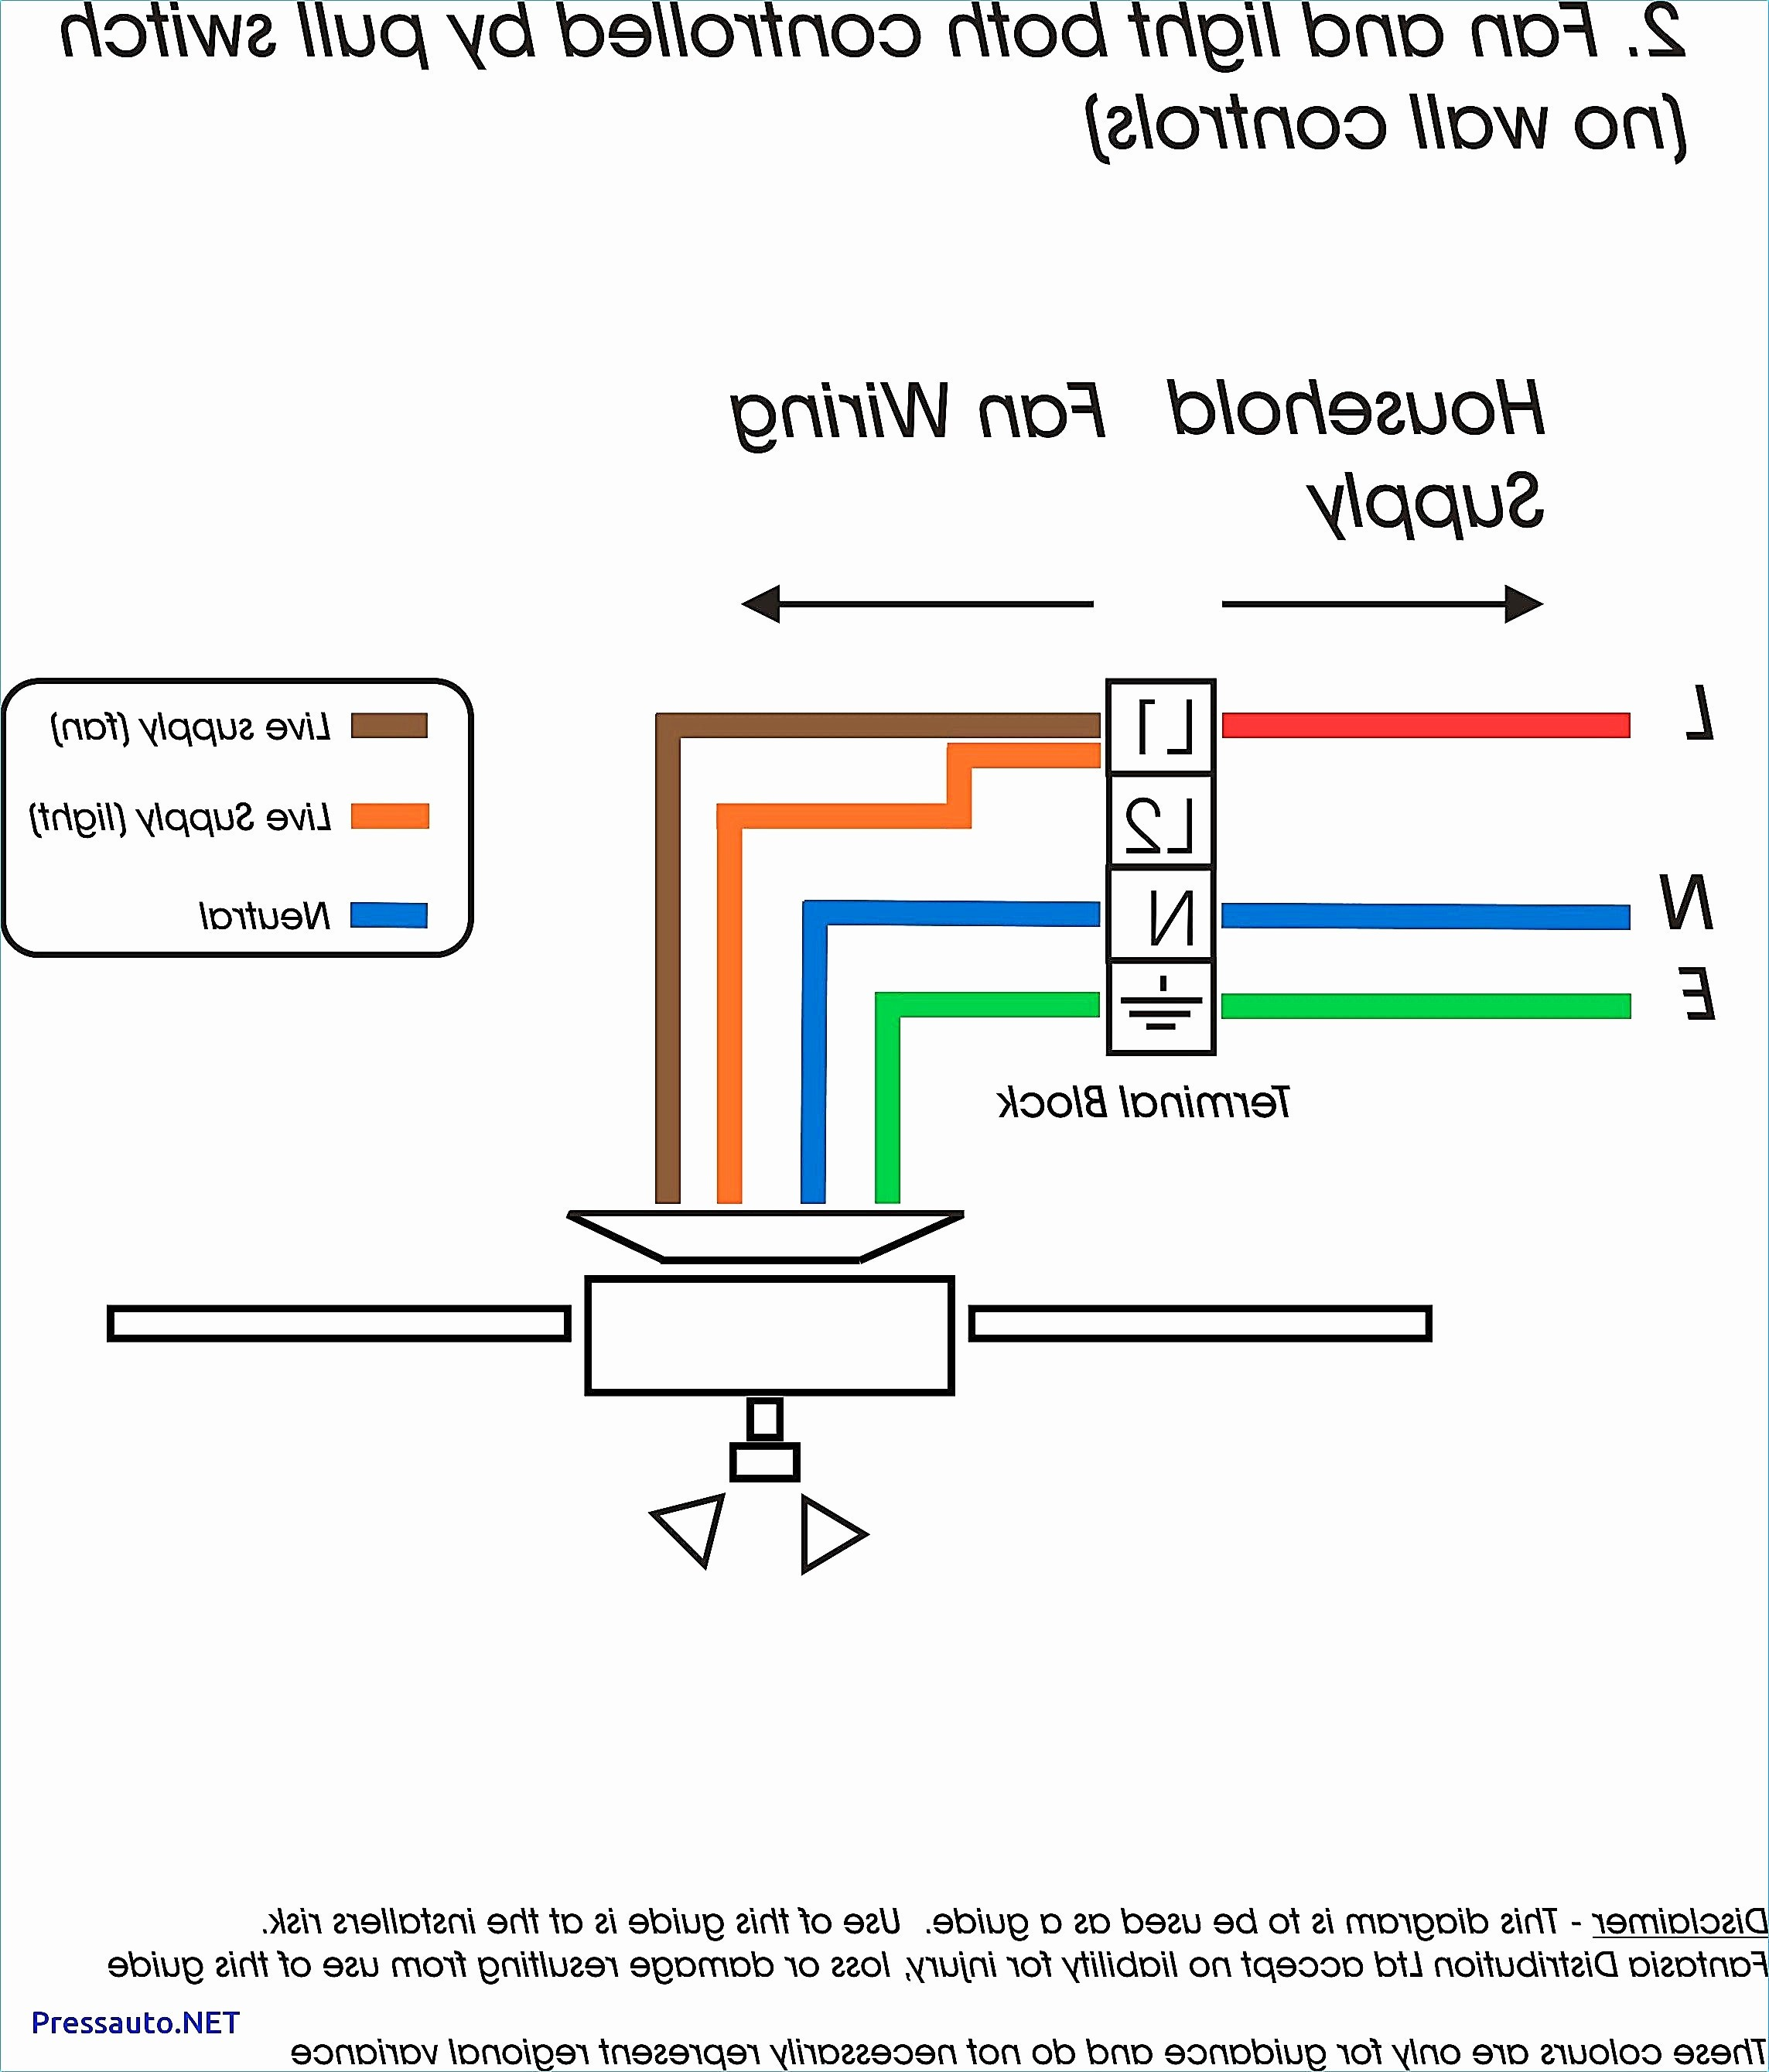 Rv Cable And Satellite Wiring Diagram Electrical Circuit Dish Network Wiring Diagram Recent Wiring Diagram For Cat5 Network